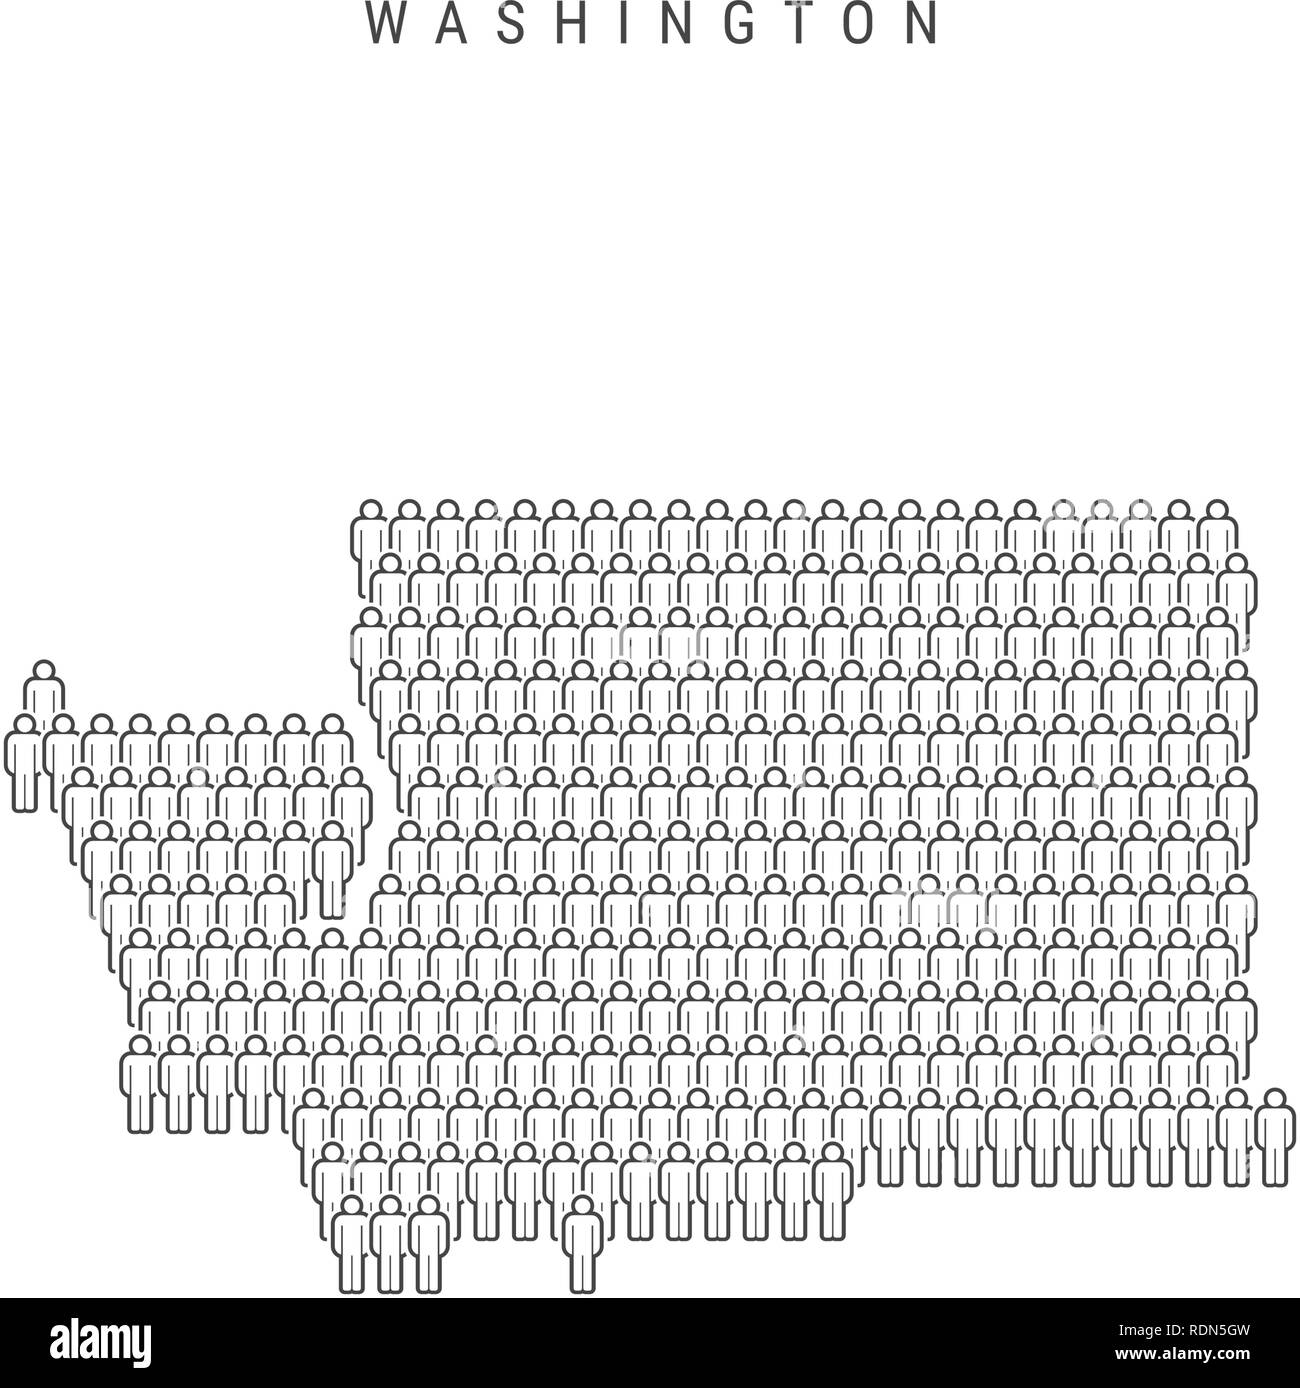 Vector People Map of Washington, US State. Stylized Silhouette, People Crowd. Washington Population - Stock Vector